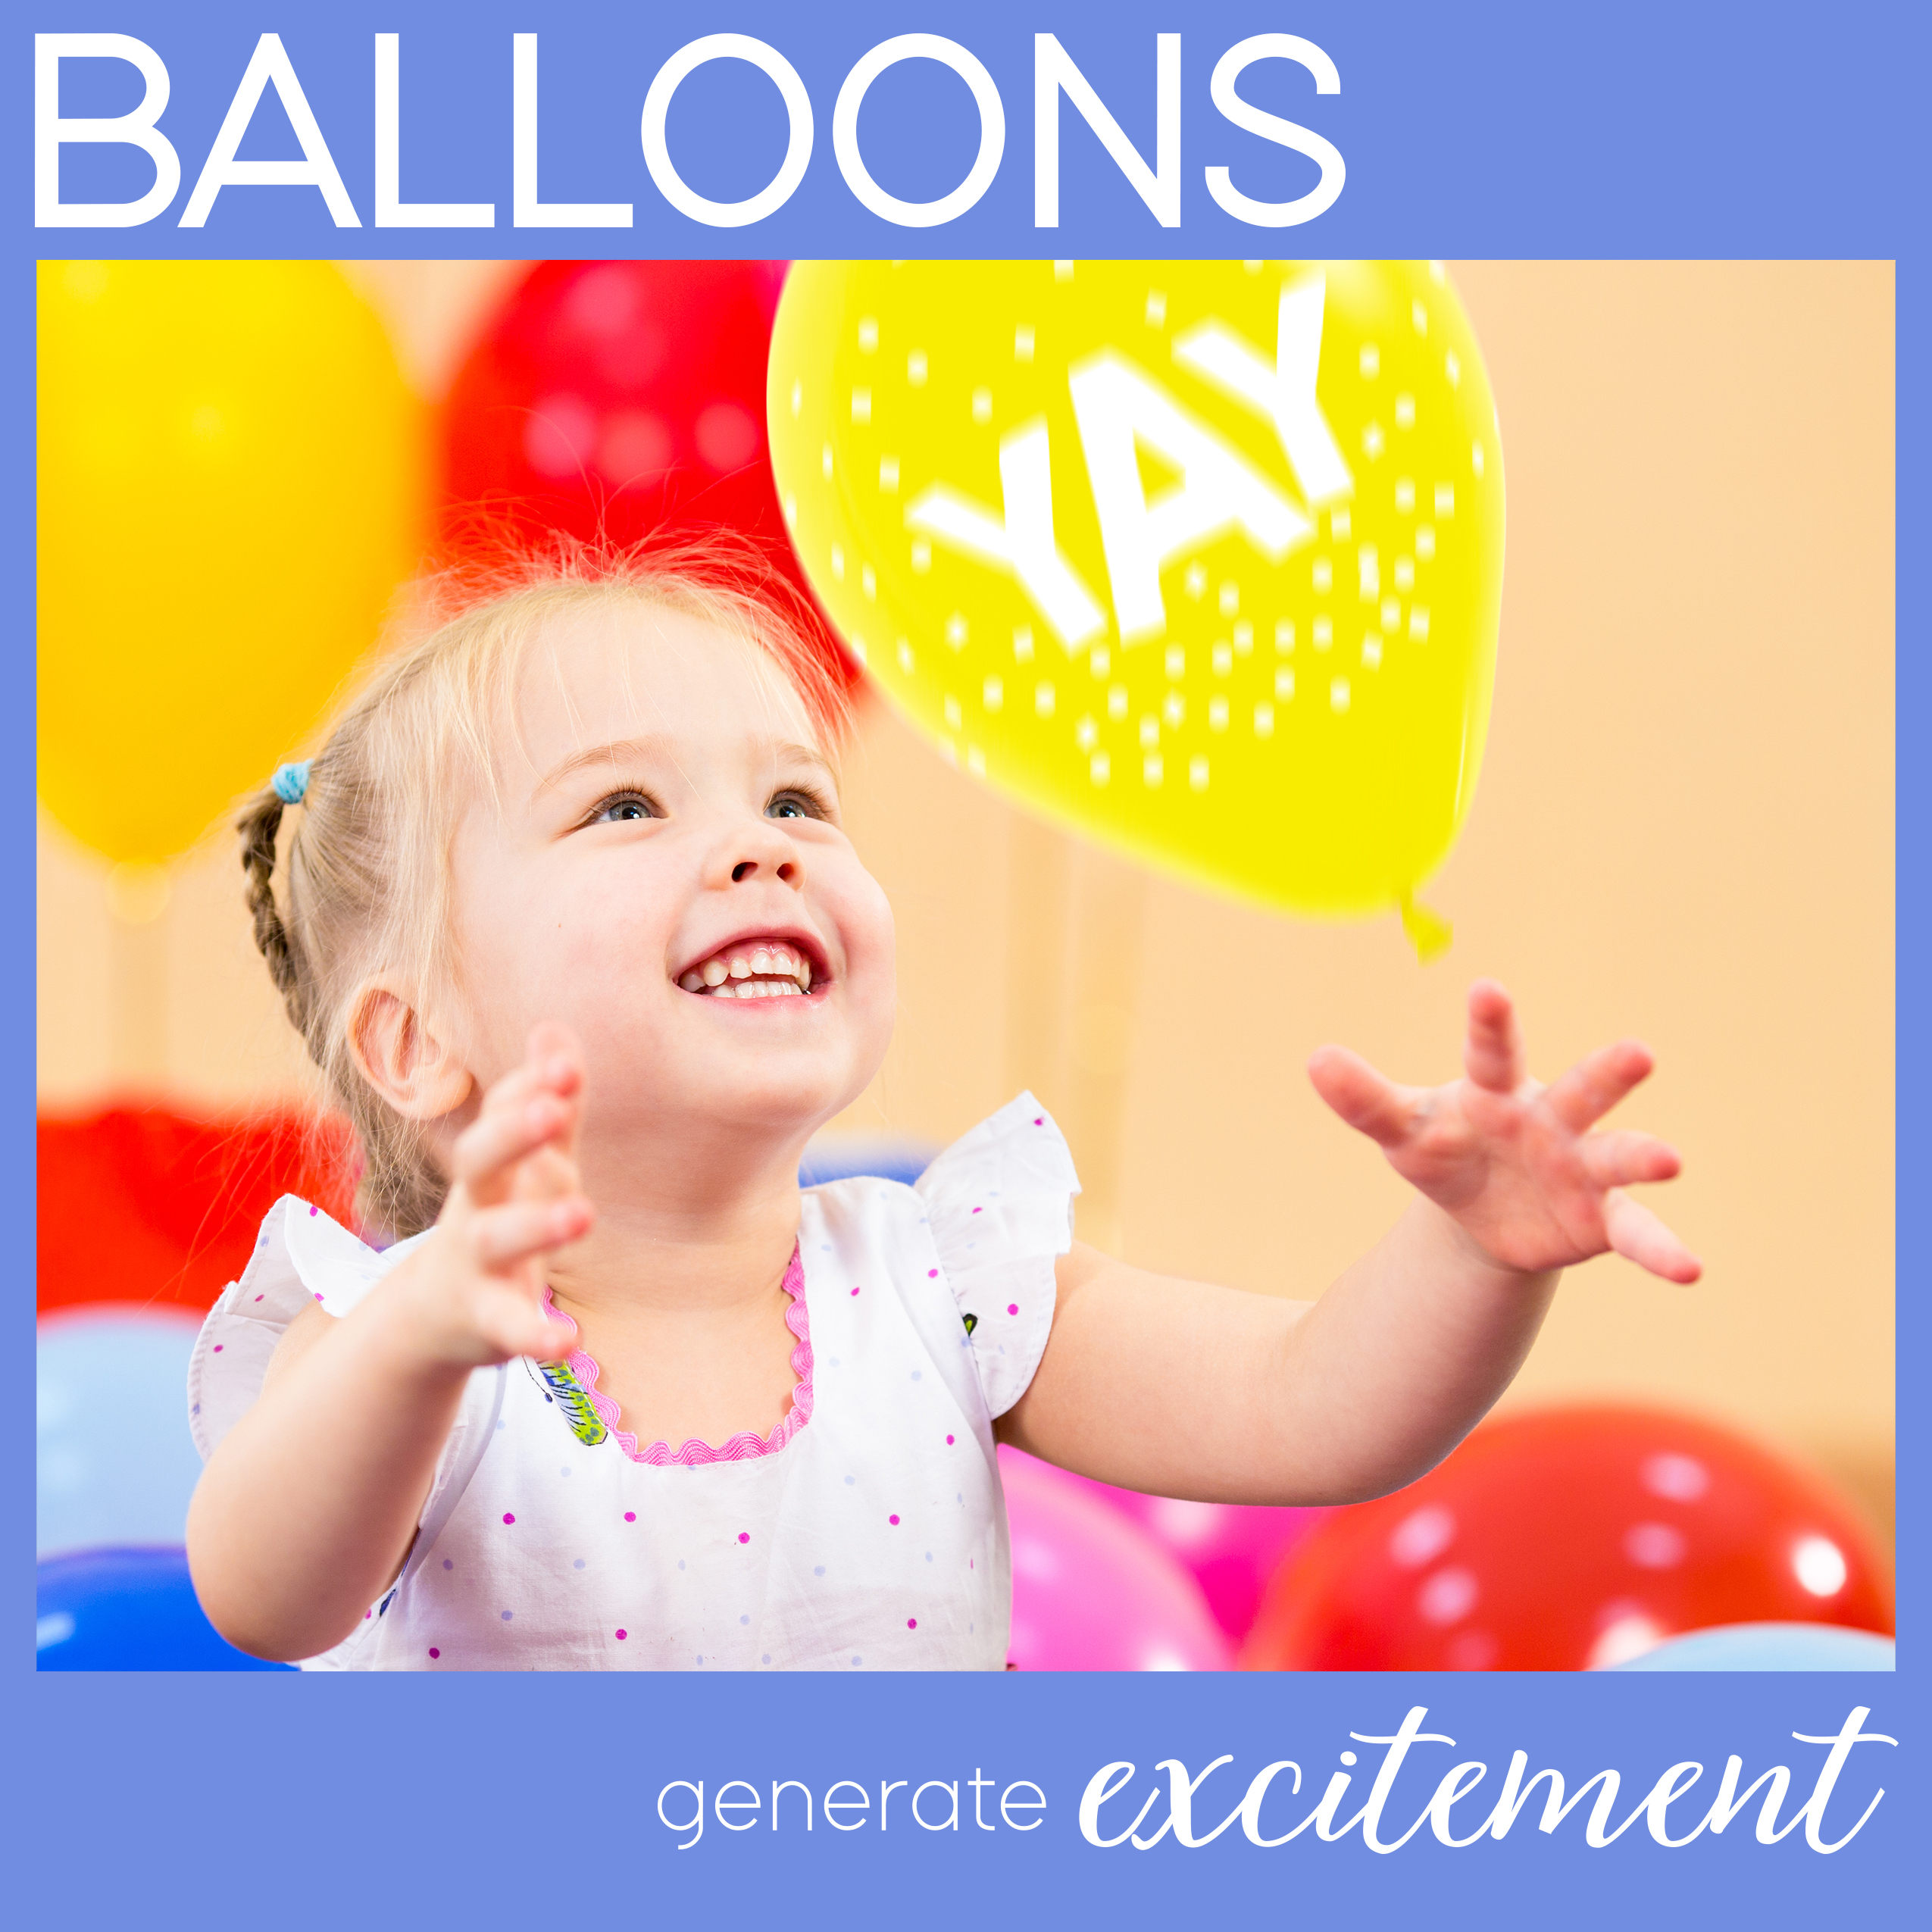 Balloon Facts - Balloons generate excitement